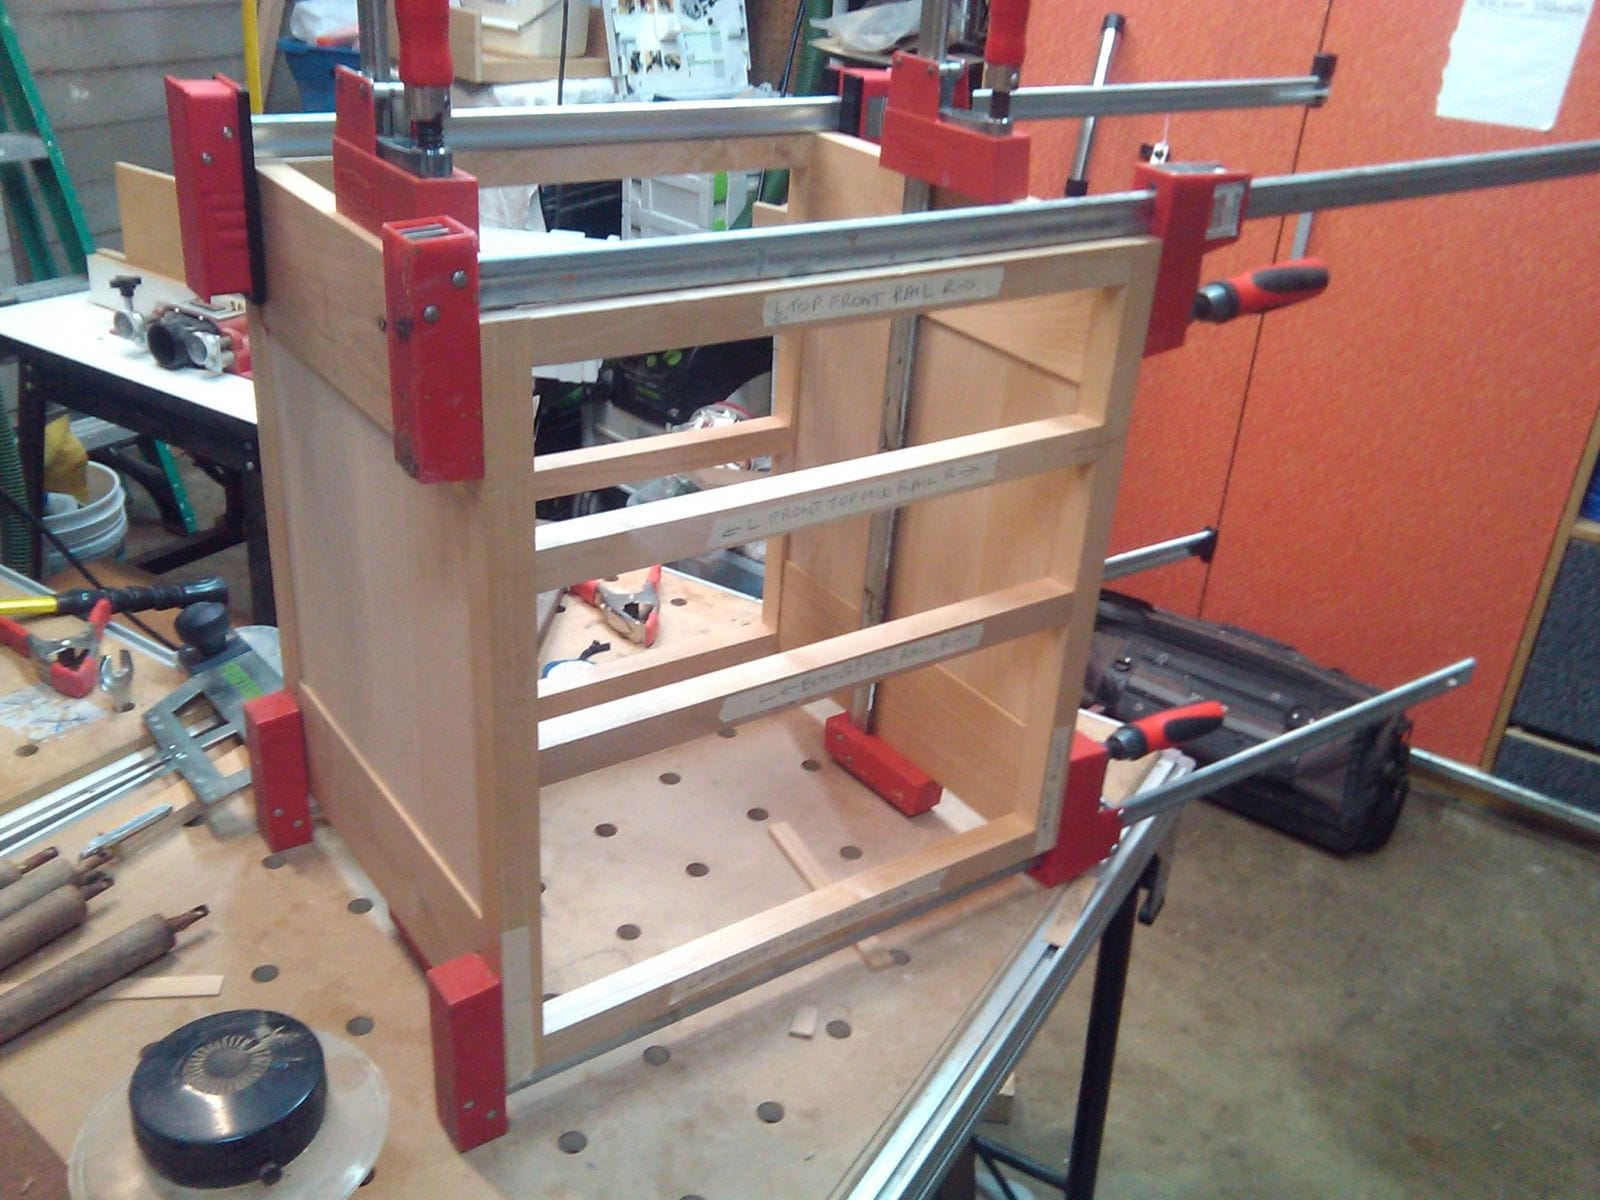 Dry fit ... looking good so far. All panels were joined with dominos ... and so was the face frame.